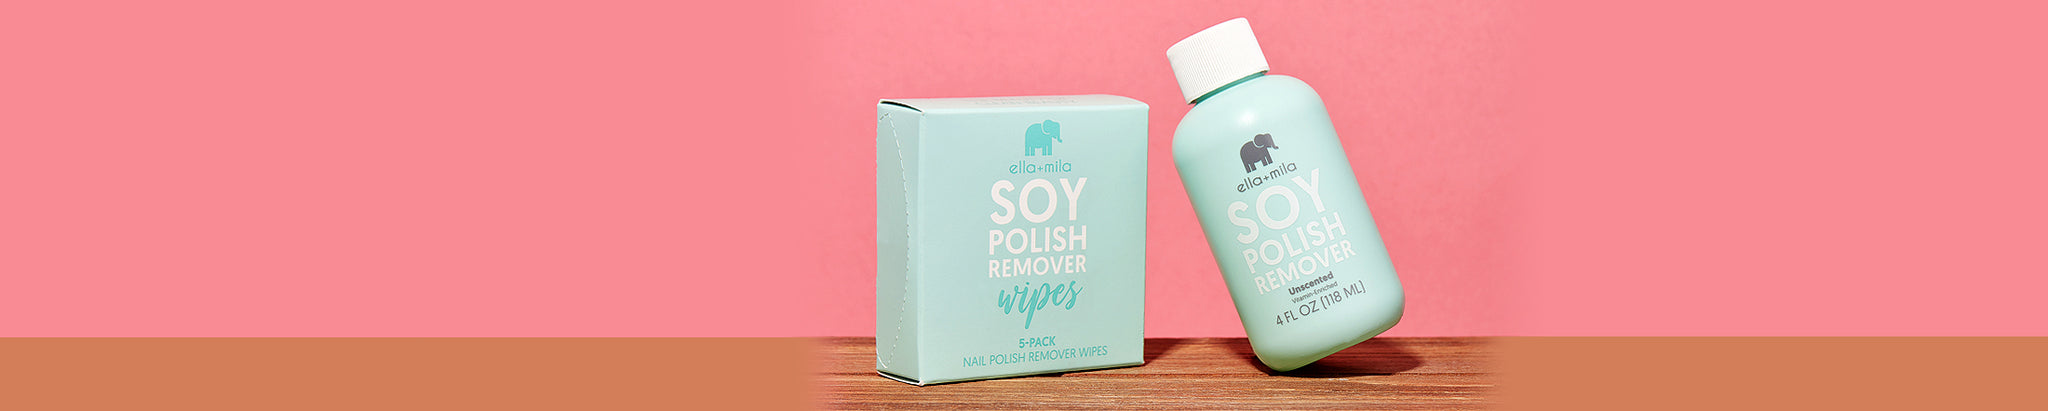 Soy nail polish unscented remover ingredients list banner